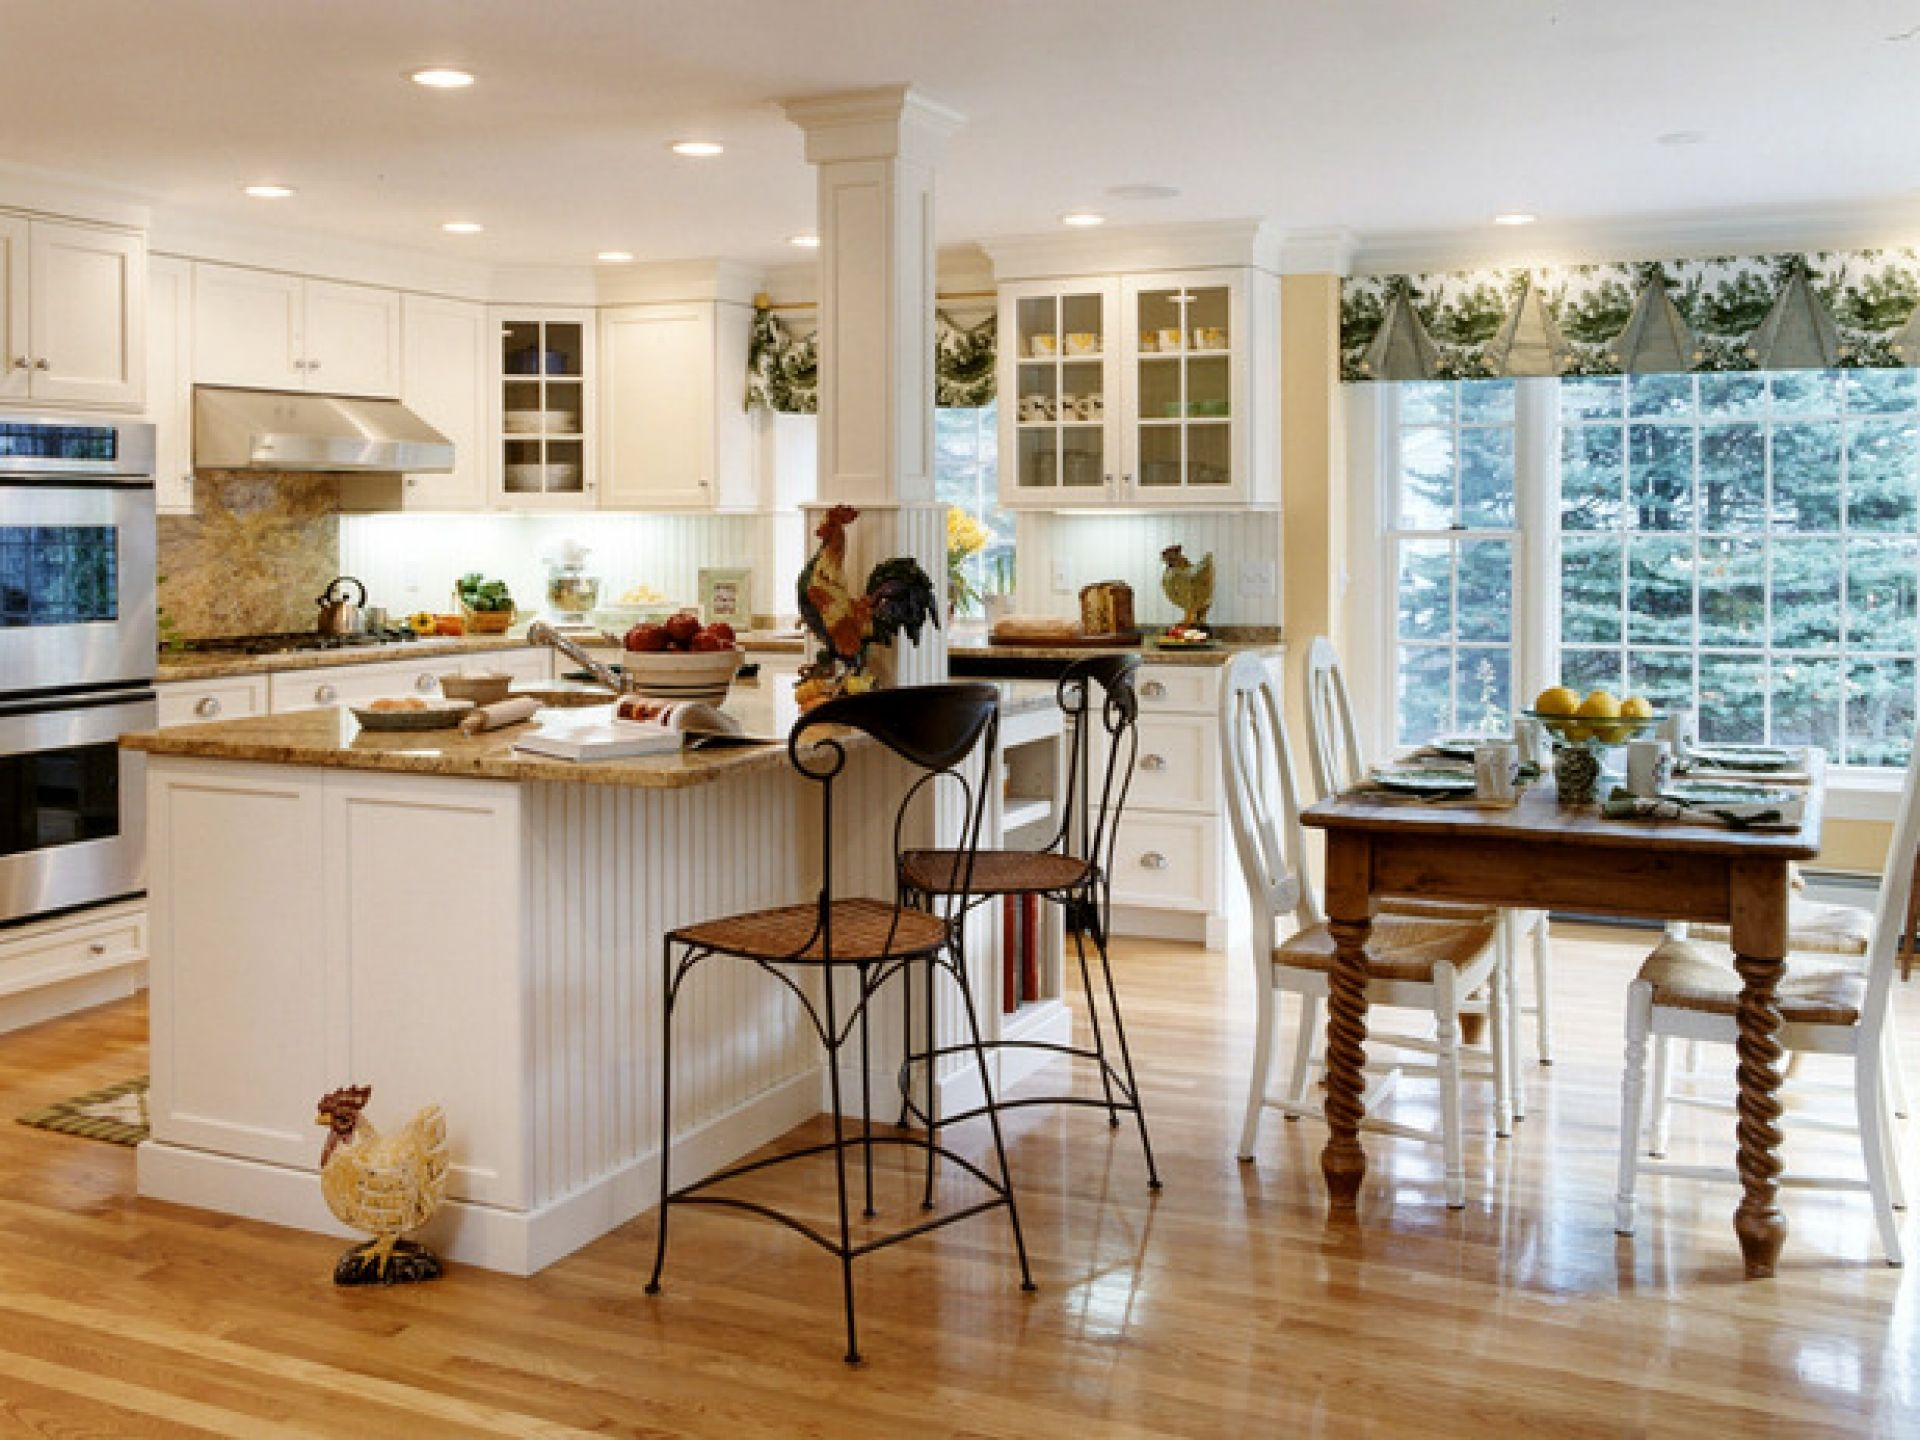 Small country kitchen design ideas for the home pinterest